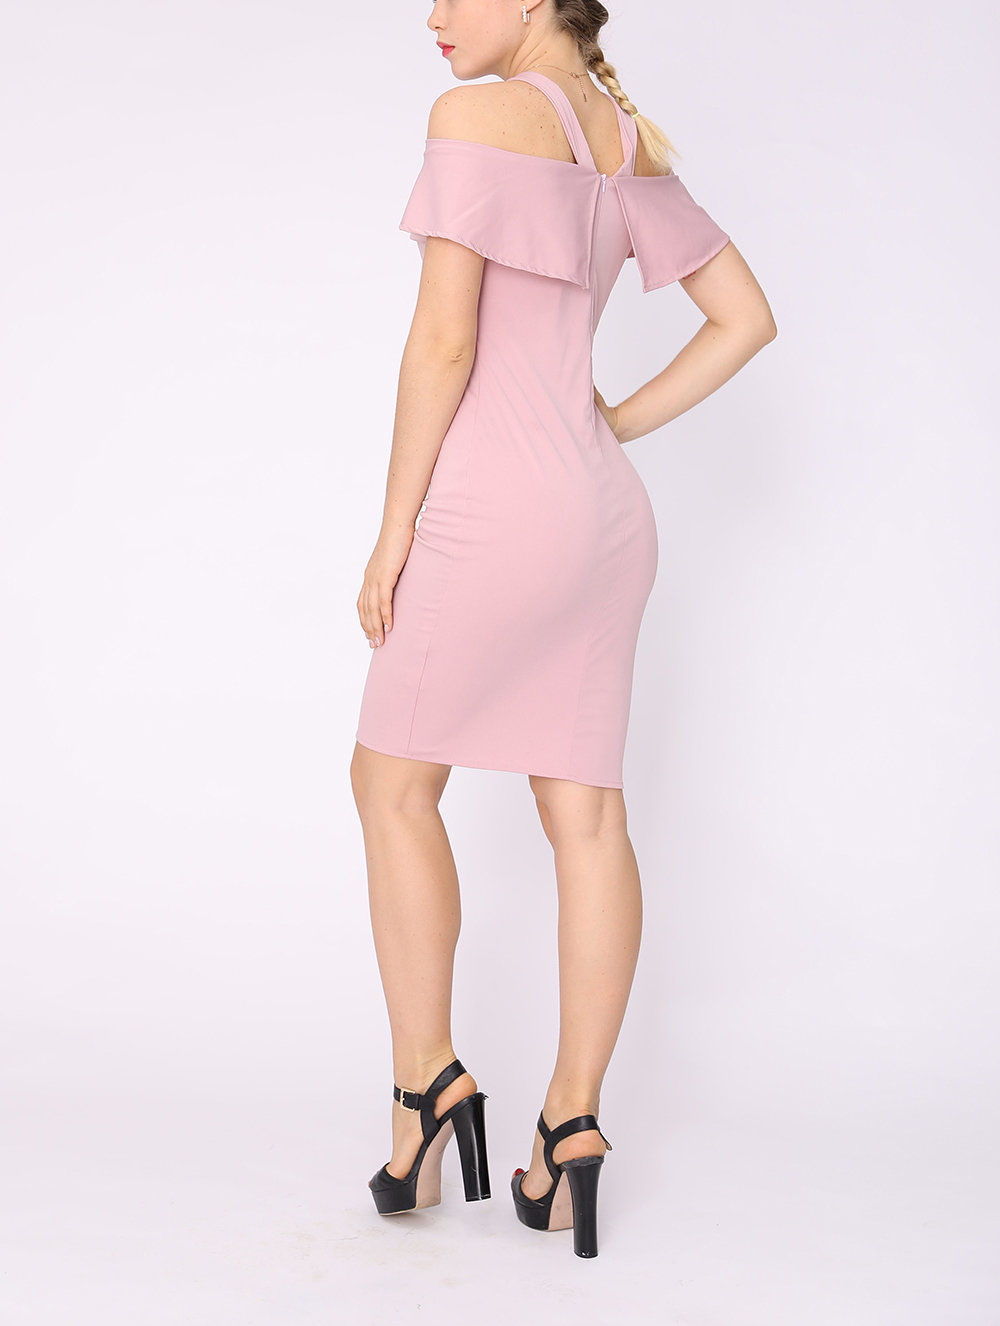 Off-Shoulder Cocktail Dress with Bodycon Fit